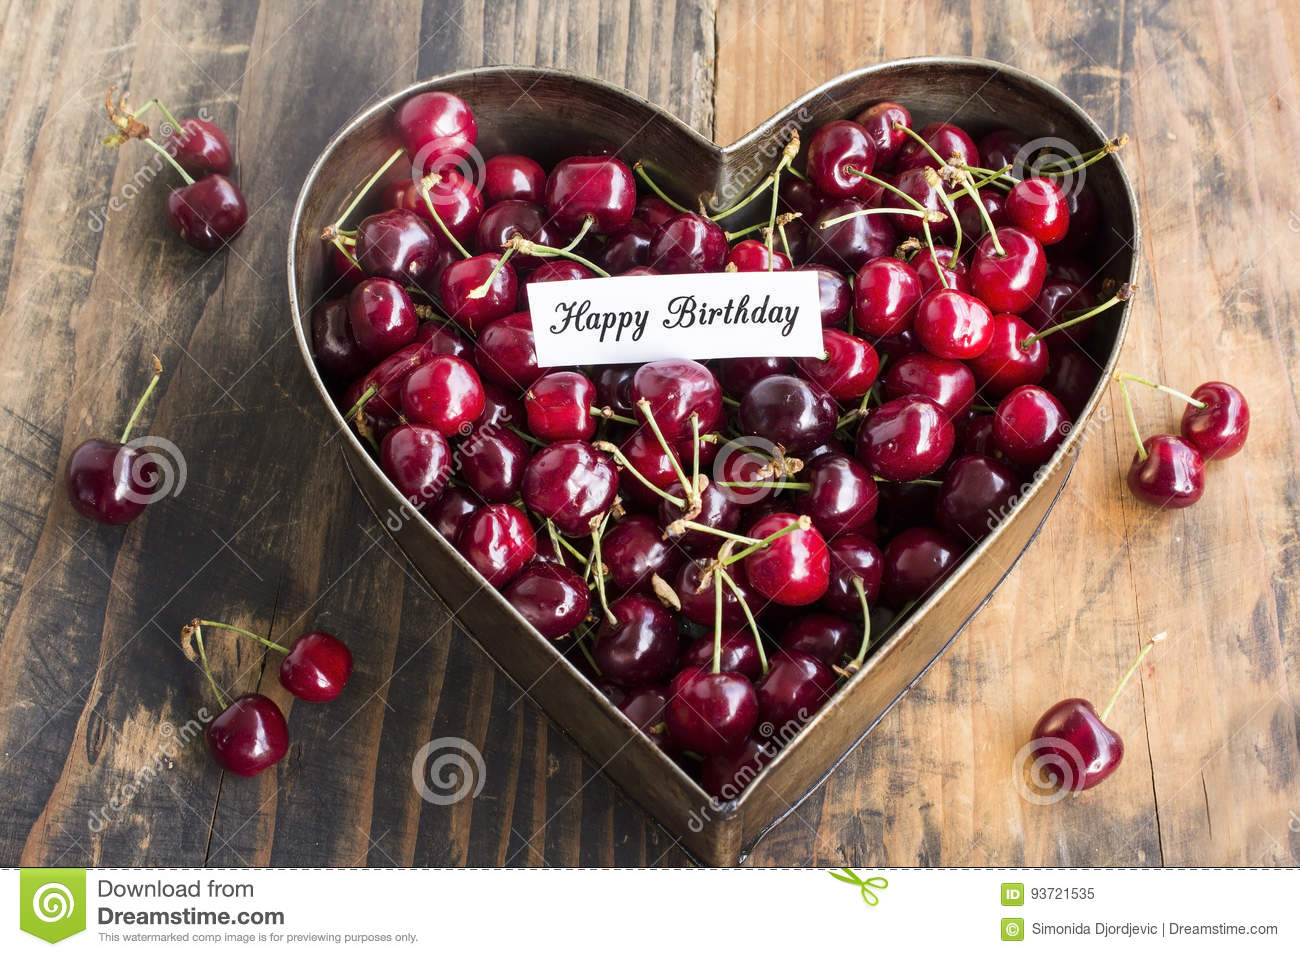 Happy Birthday Card With Cherries In Heart Cake Pan